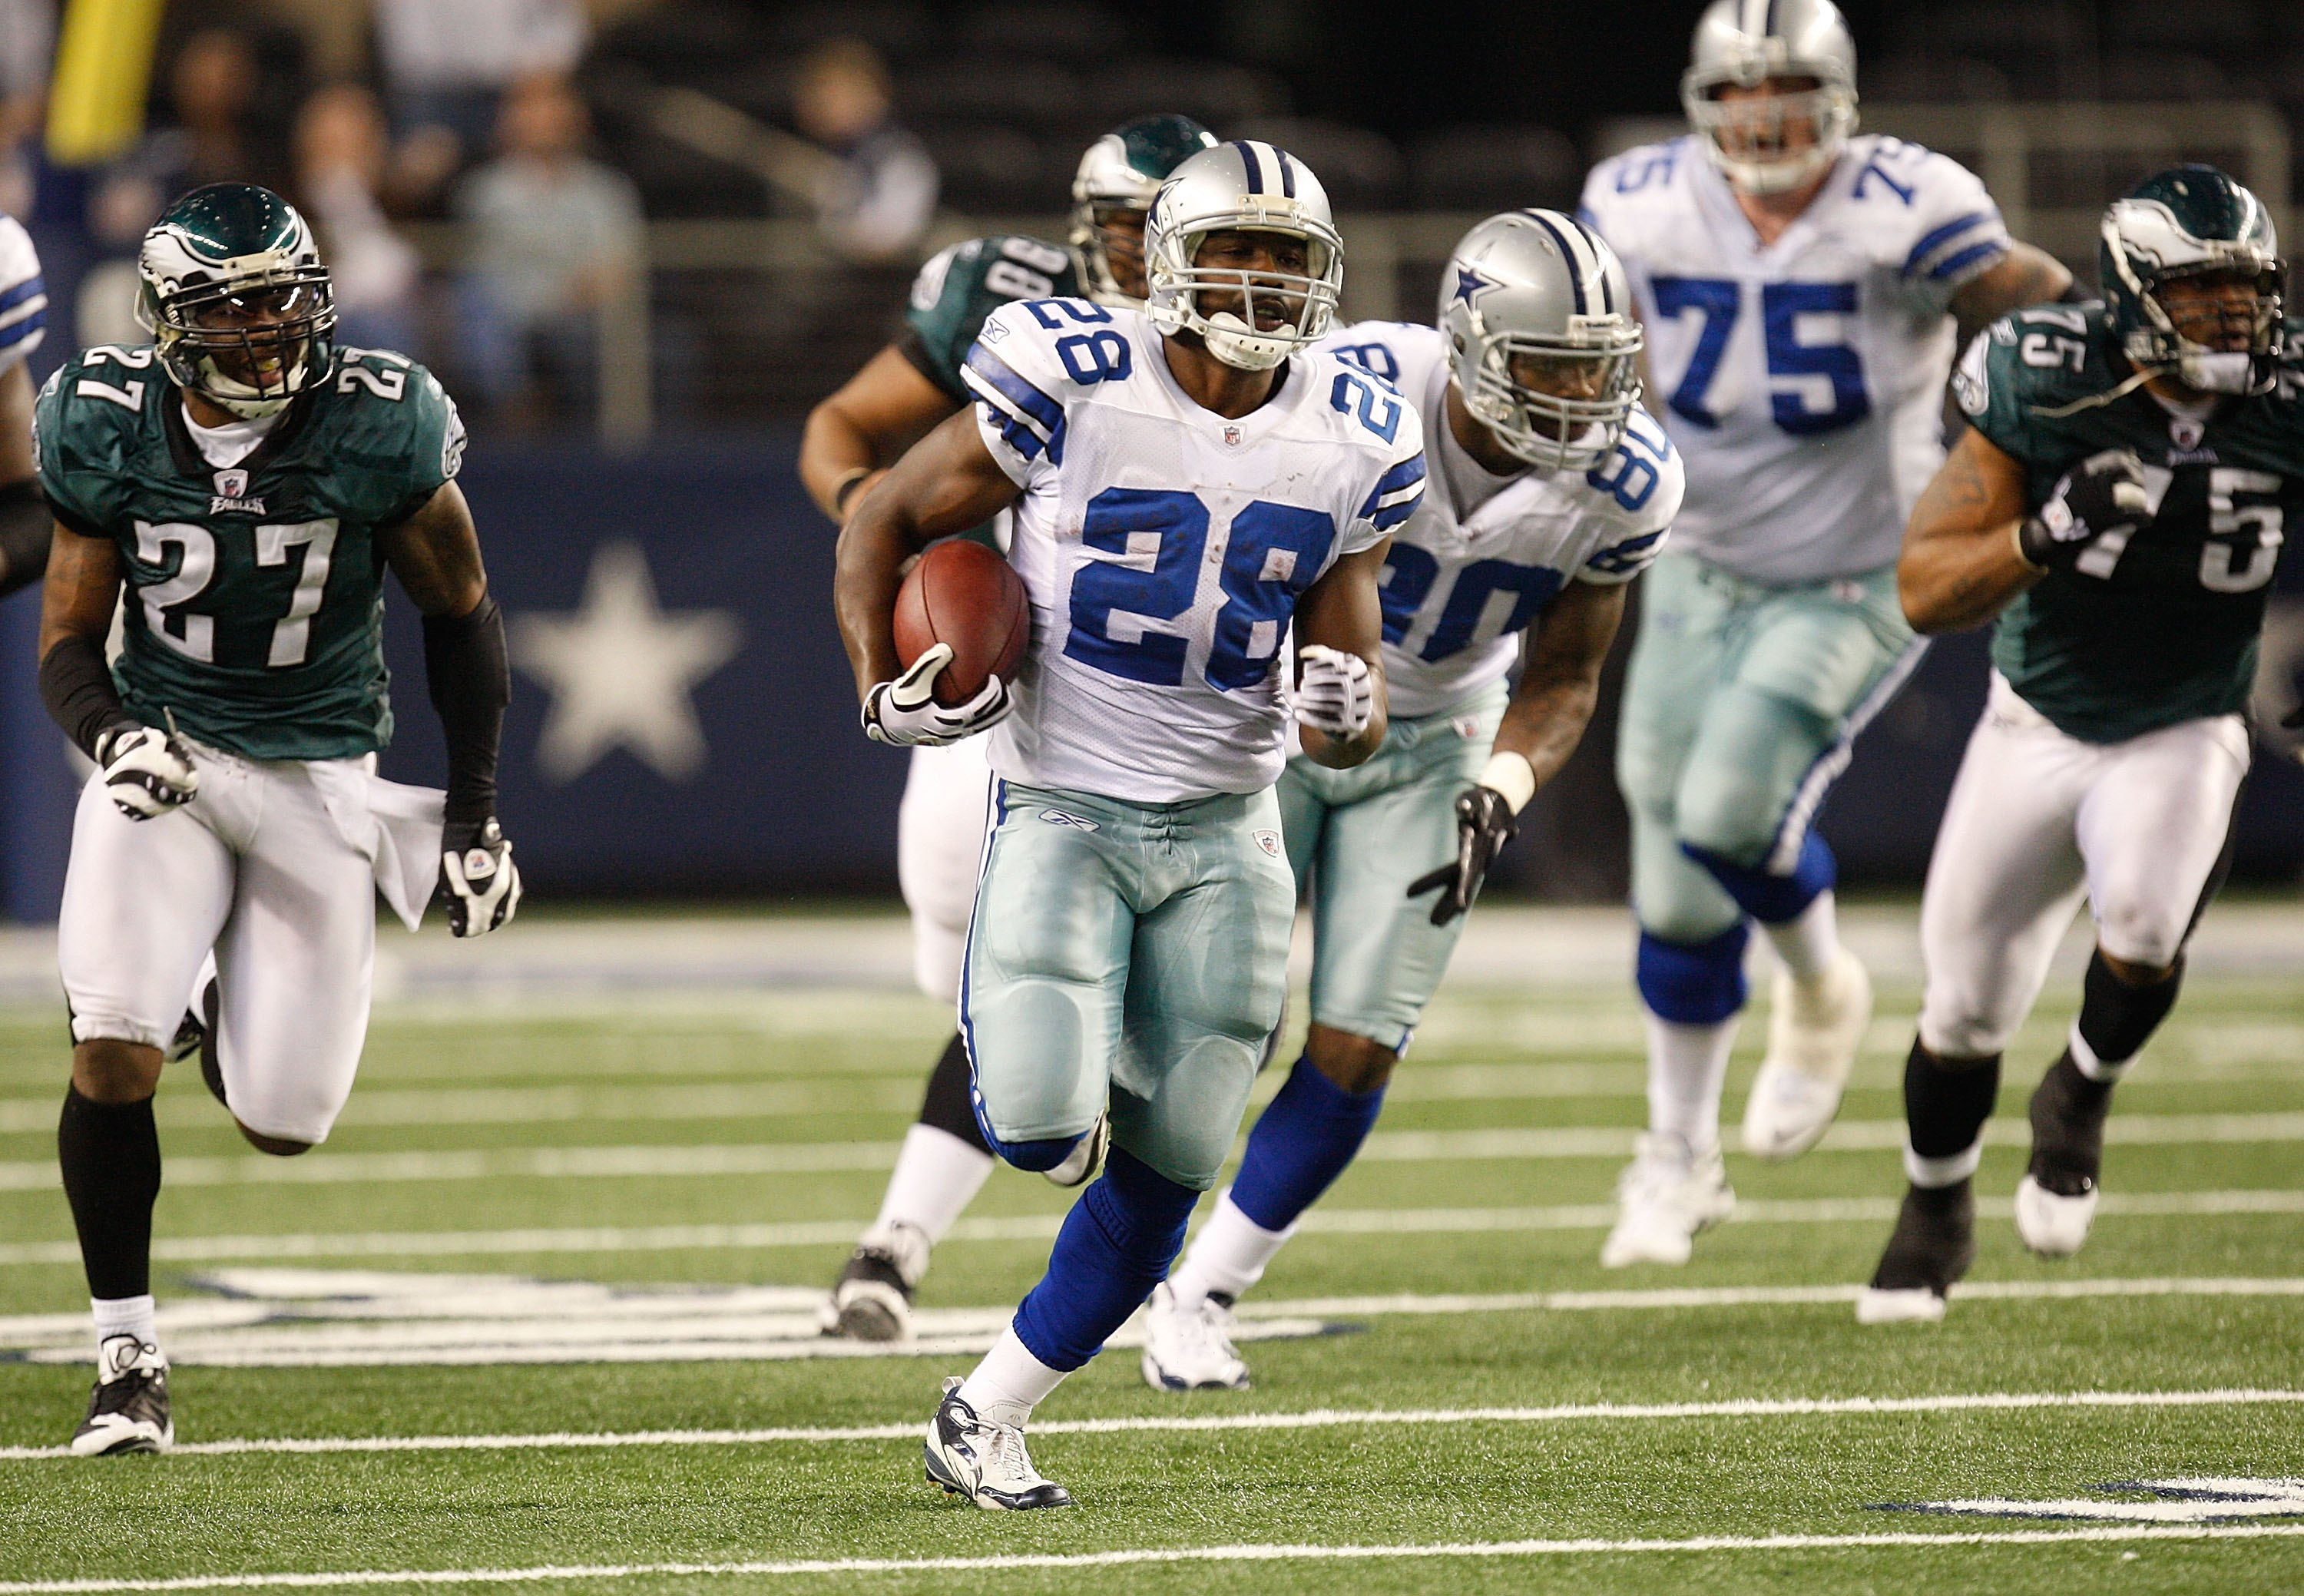 ARLINGTON, TX - JANUARY 09:  Running back Felix Jones #28 of the Dallas Cowboys runs the ball against the Philadelphia Eagles during the 2010 NFC wild-card playoff game at Cowboys Stadium on January 9, 2010 in Arlington, Texas.  (Photo by Ronald Martinez/